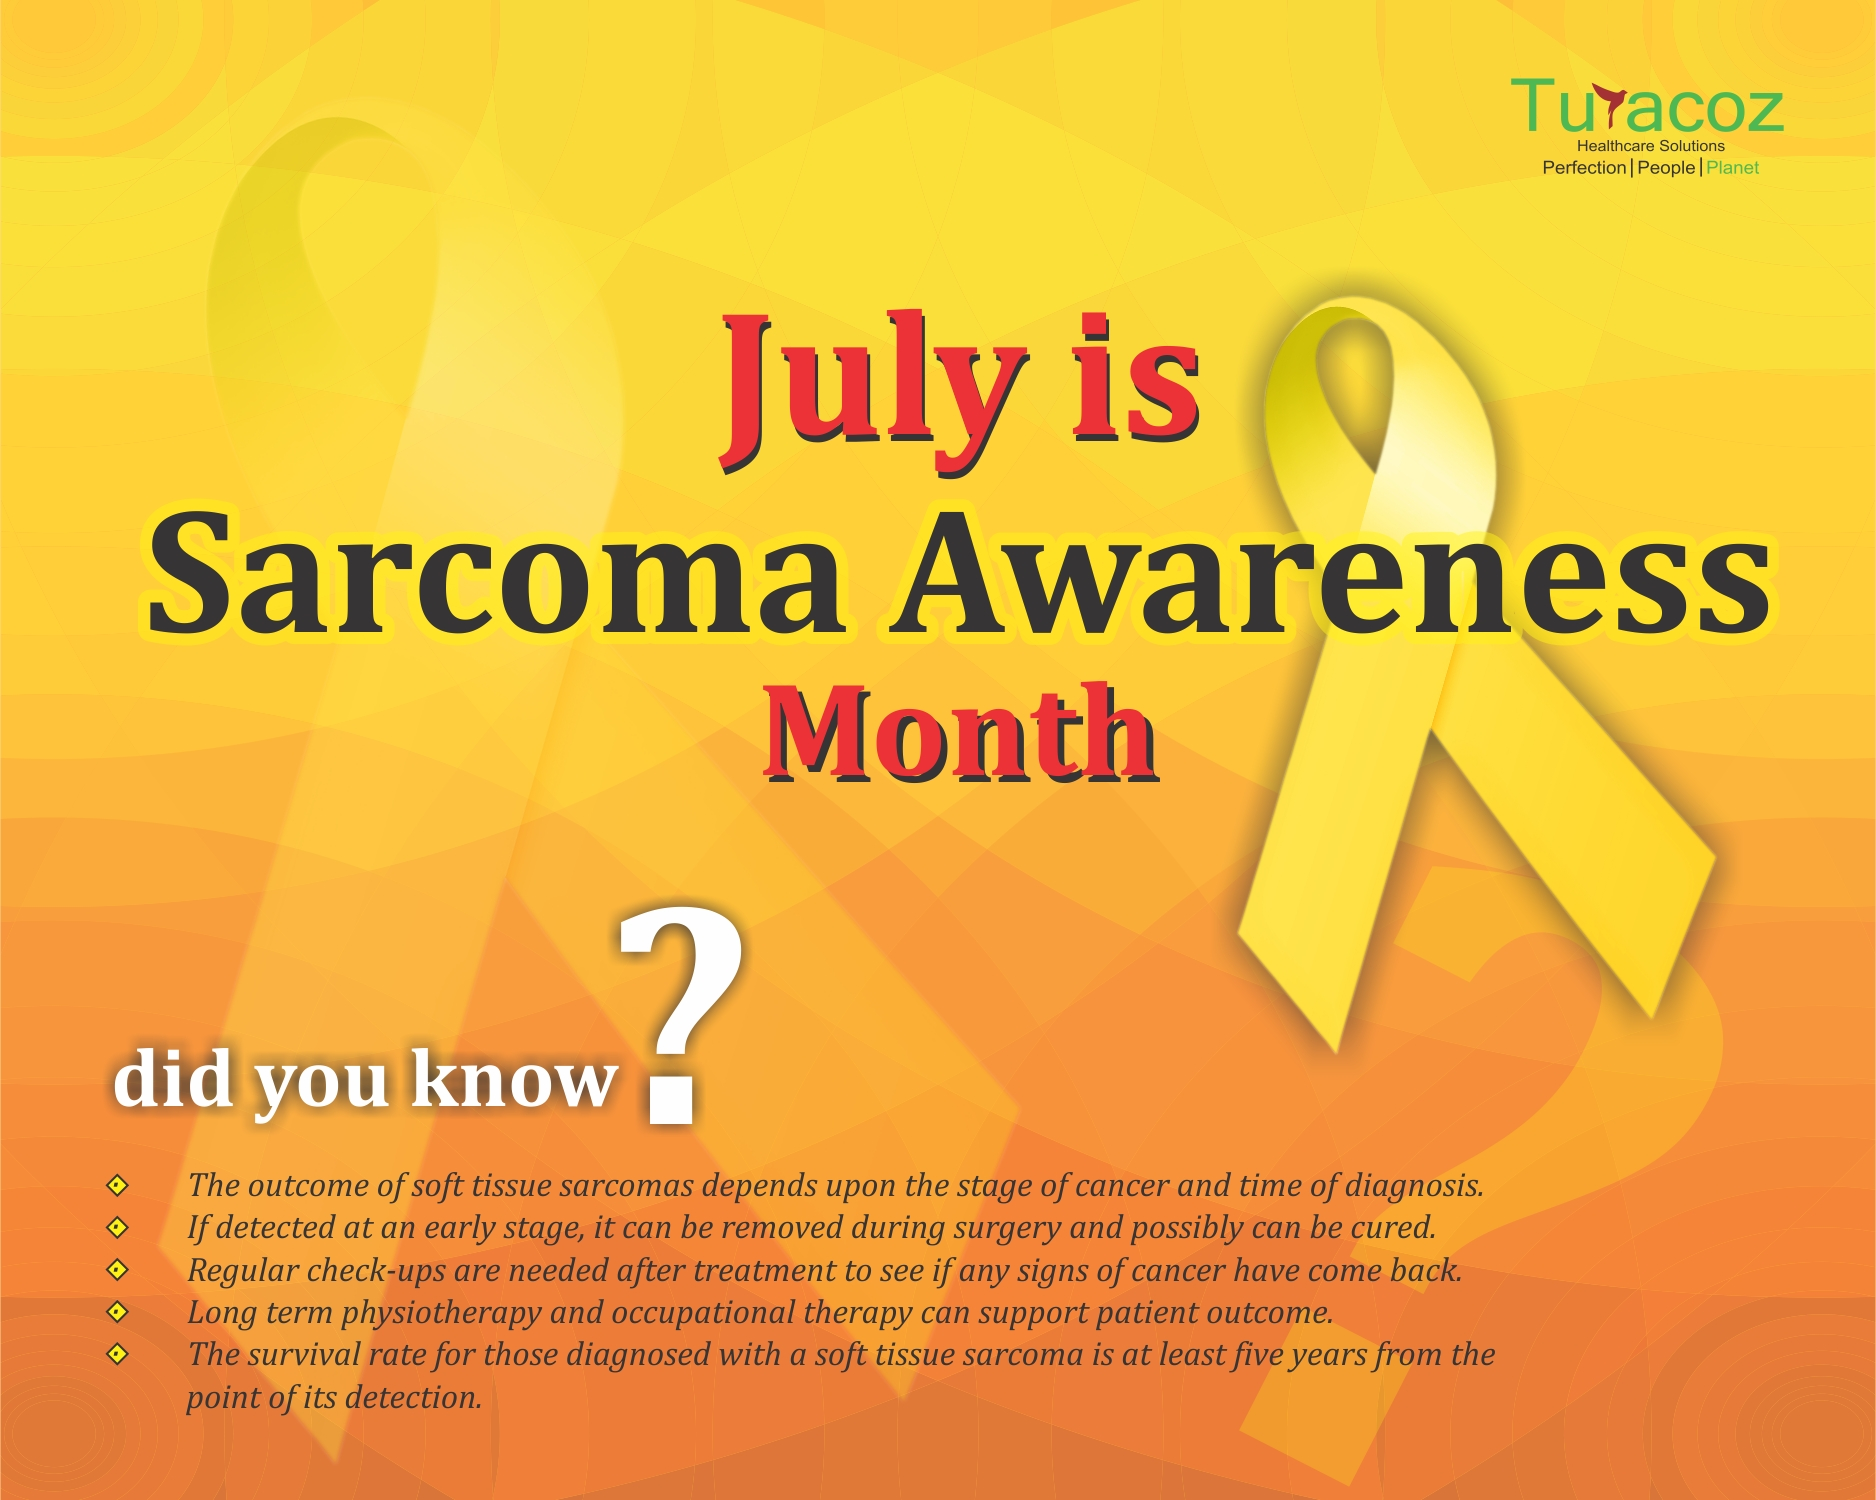 Monthly Calendar Health Awareness : List of synonyms and antonyms the word july awareness